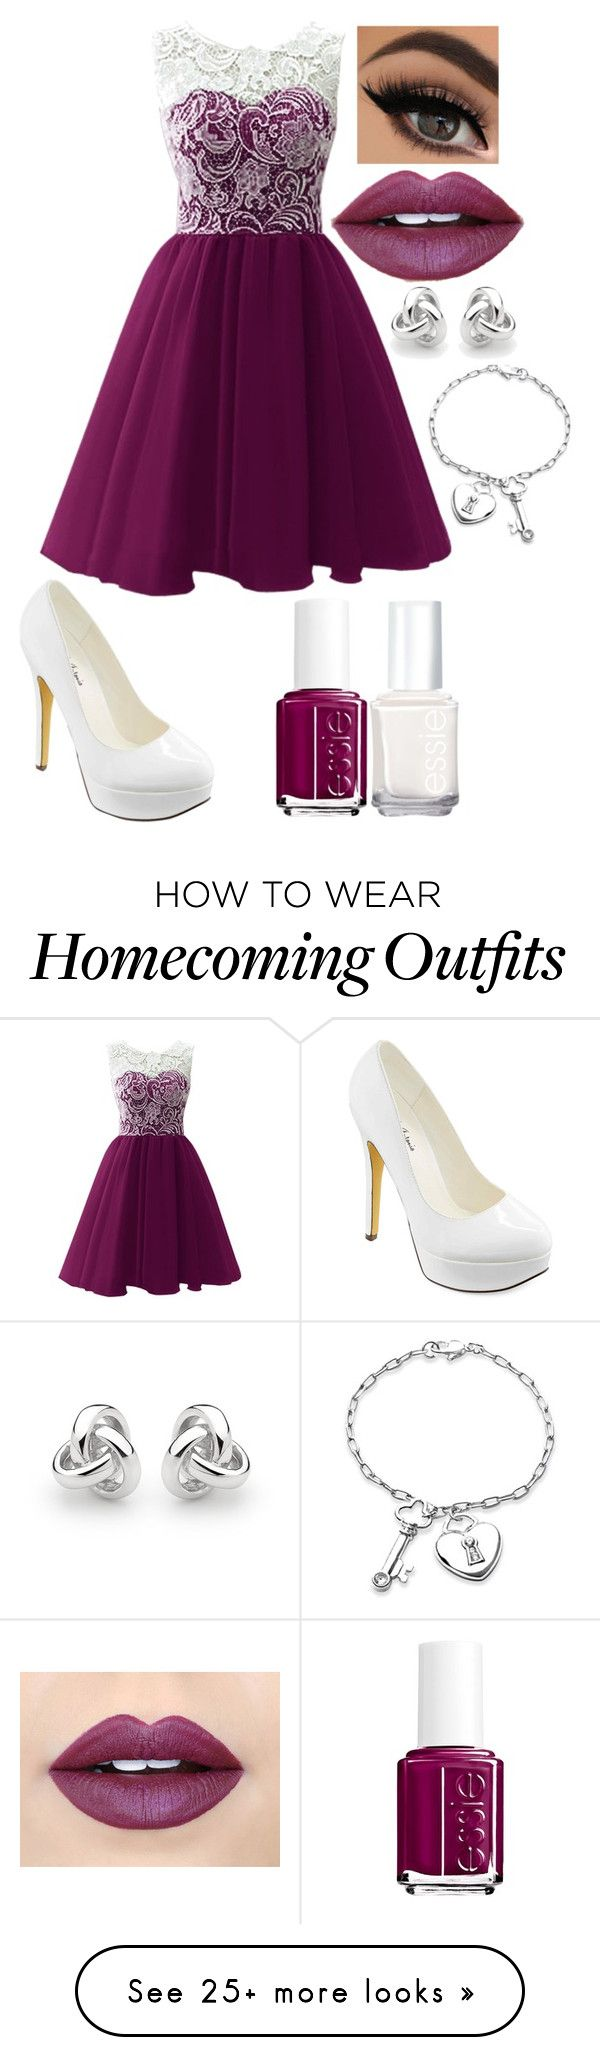 """Wine"" by xdreamerxjoulesx on Polyvore featuring Michael Antonio, Georgini, Bling Jewelry, Fiebiger and Essie"